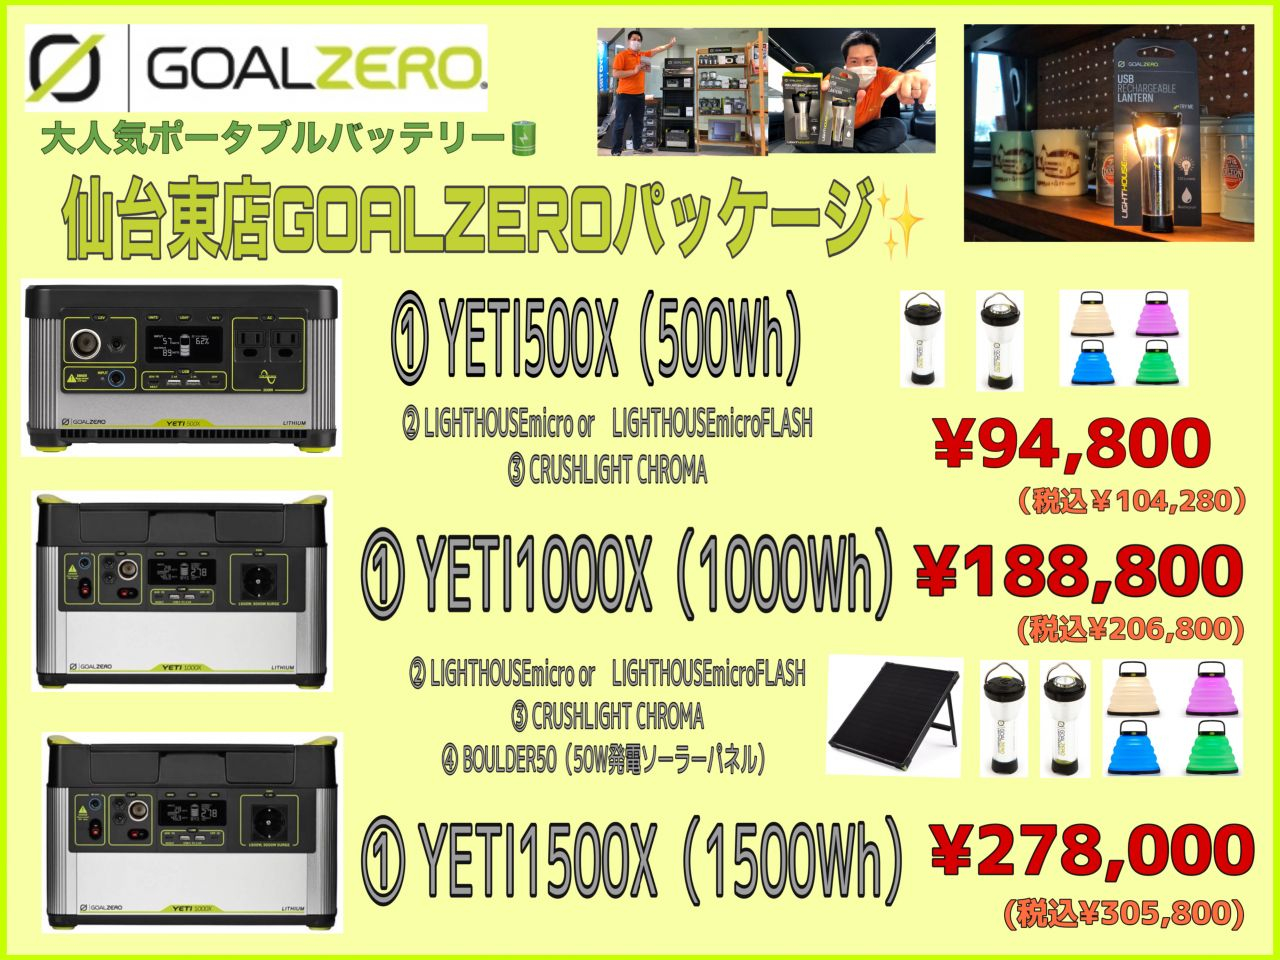 flexdream仙台東店 Goal Zeroパッケージ ポータブル電源 YETI LIGHITHOUSE MICRO LIGHITHOUSE MICRO FLASH